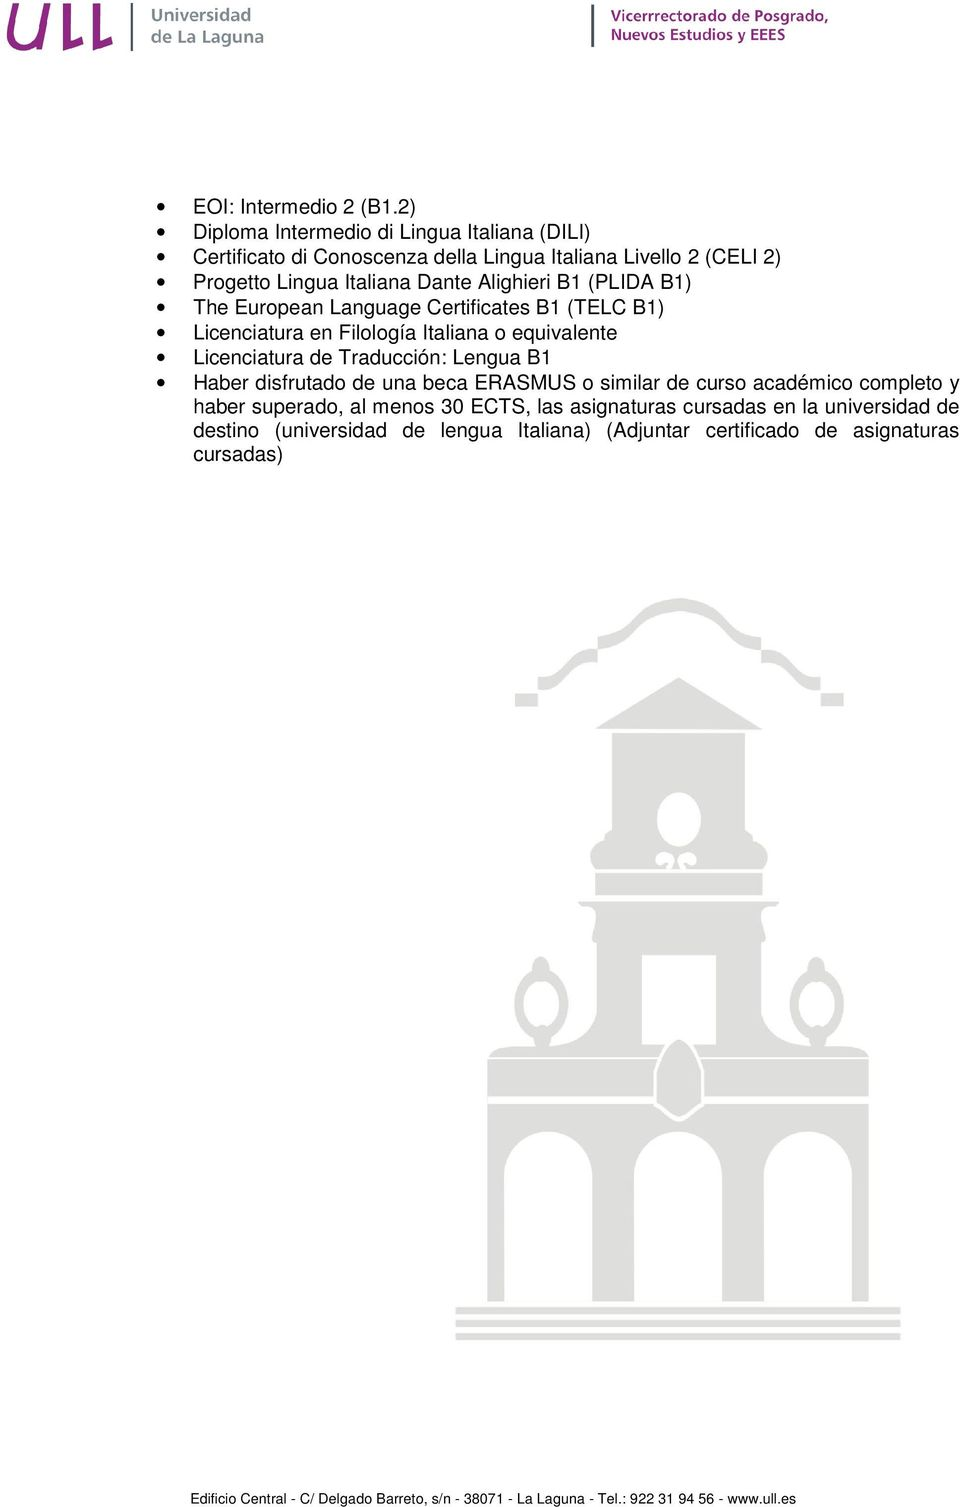 The European Language Certificates B1 (TELC B1) Licenciatura en Filología Italiana o